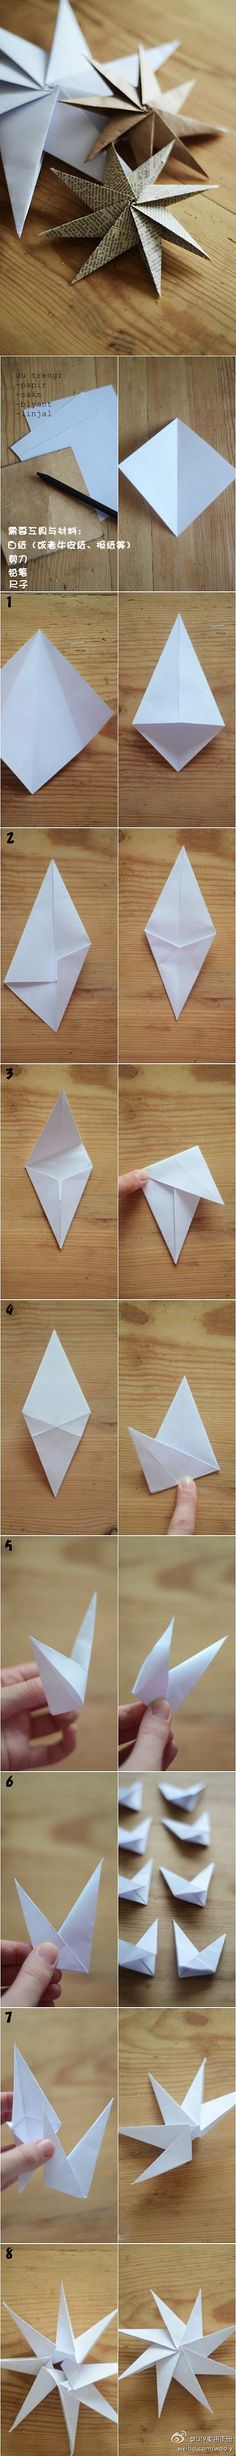 Origami 8-point star -- tutorial